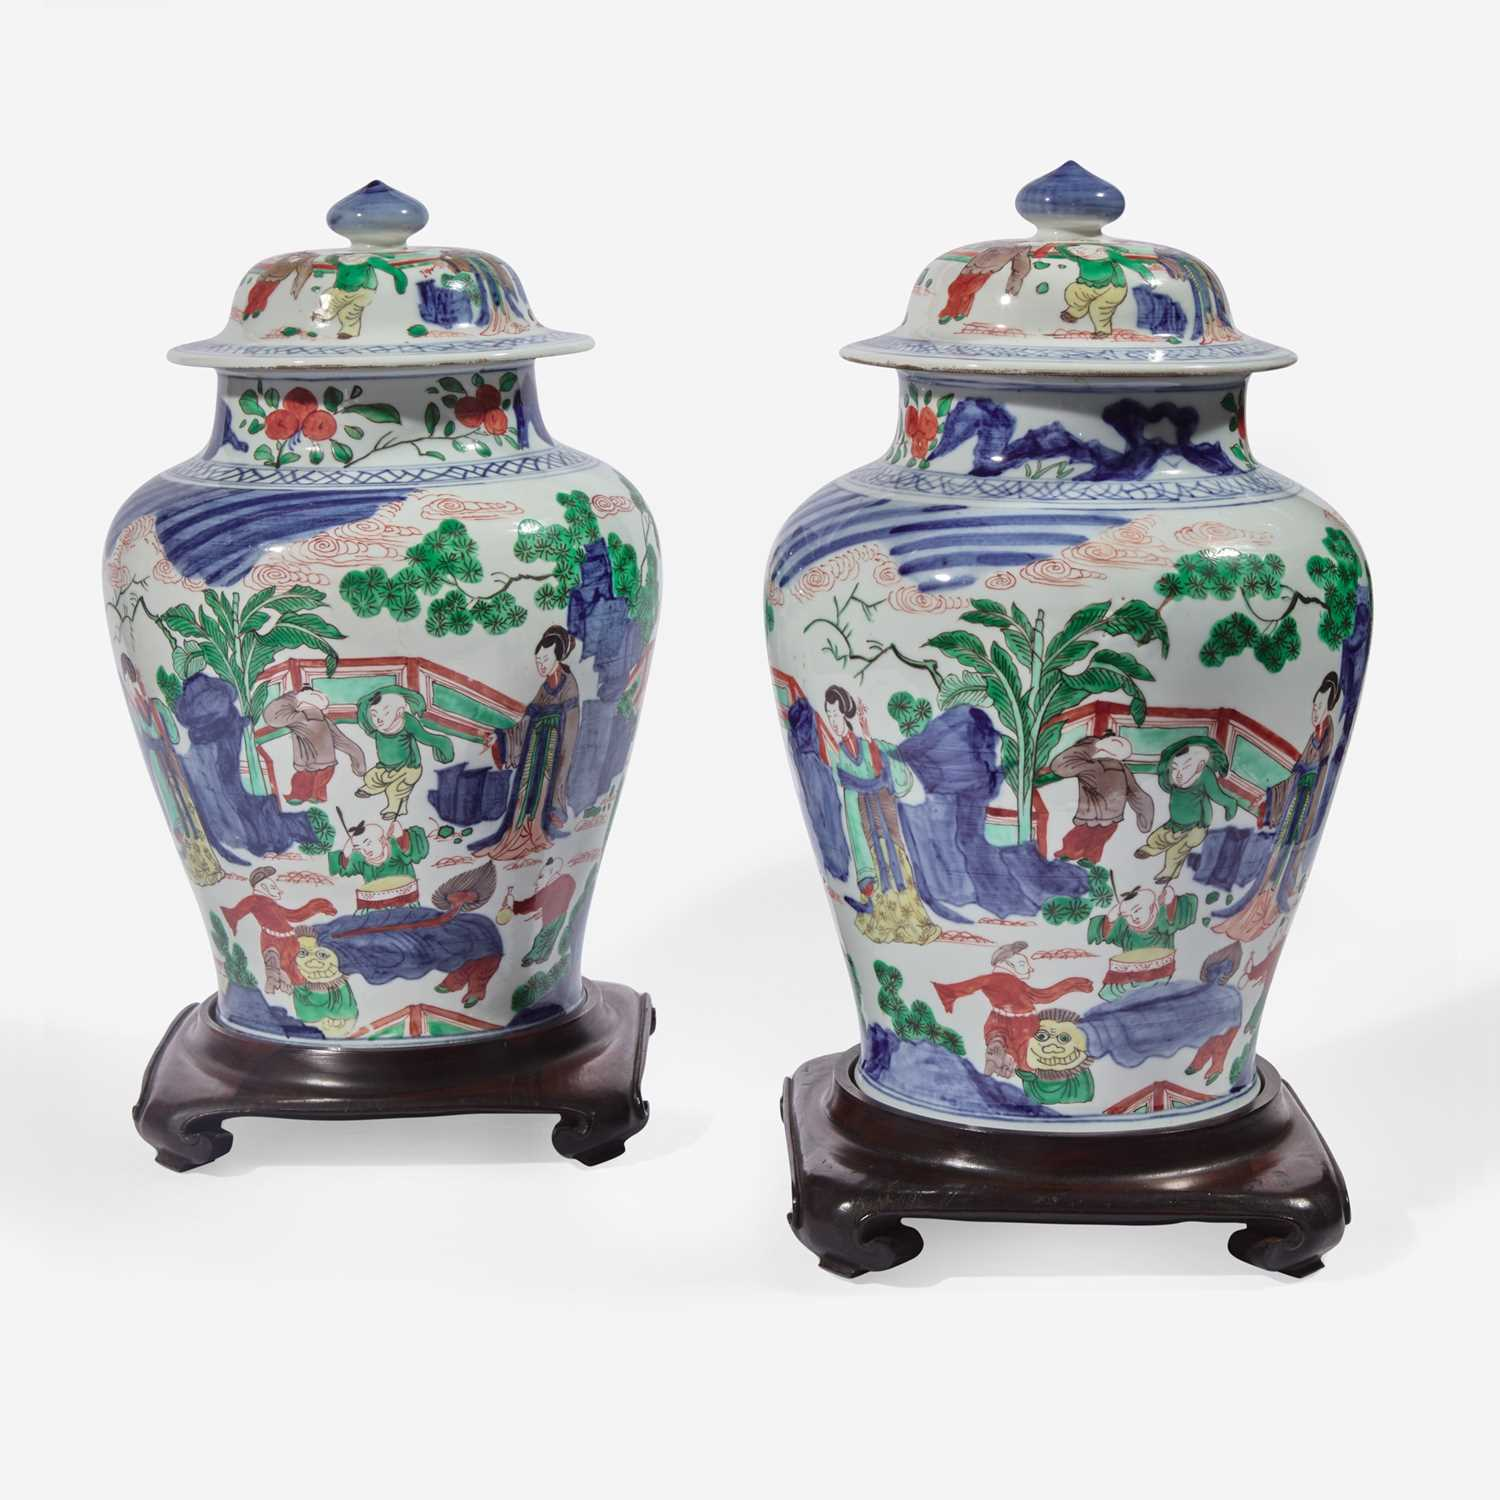 Lot 39 - A pair of Chinese wucai decorated porcelain jars with covers 五彩带盖带底座大罐一对